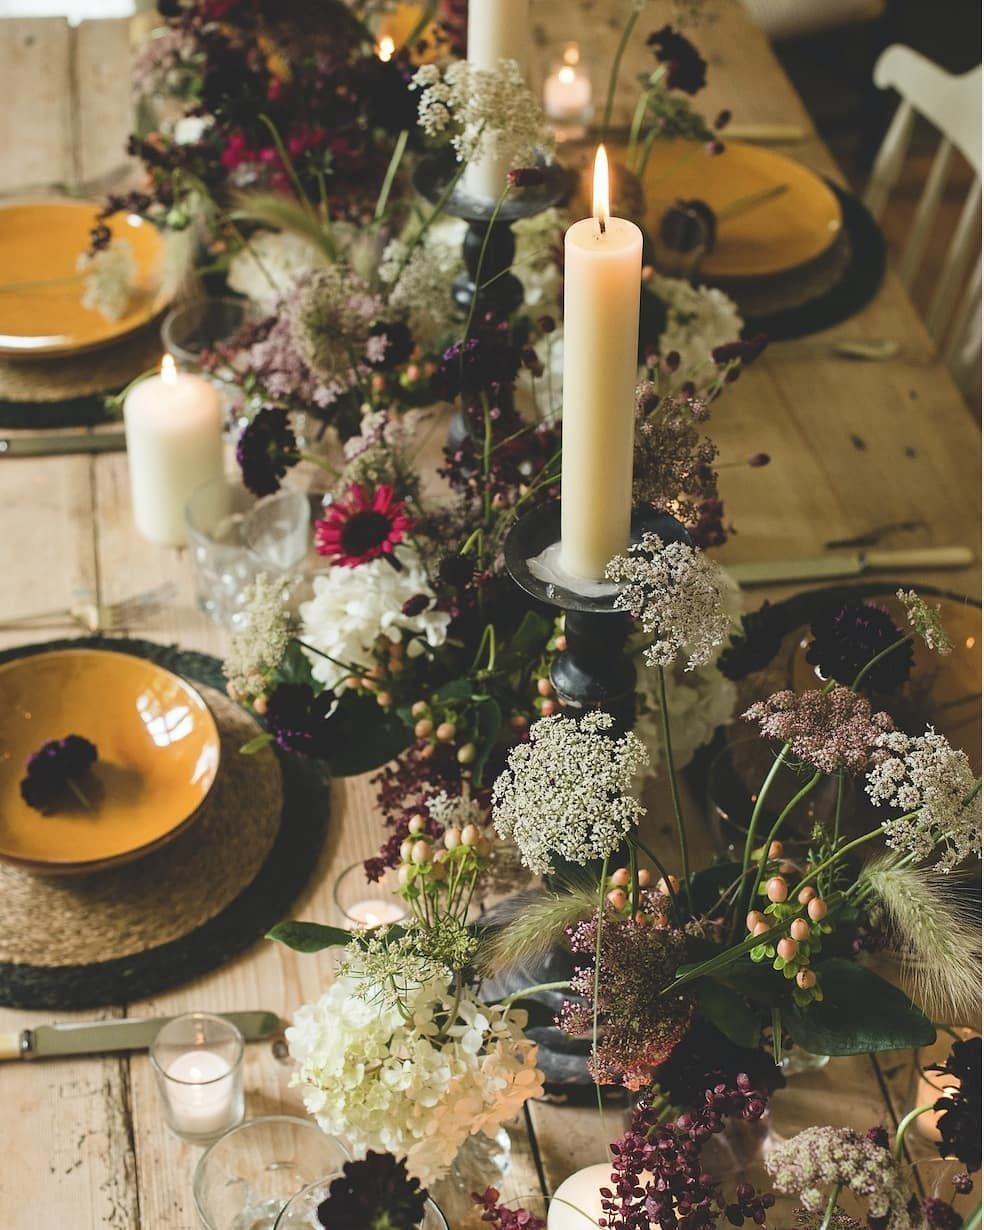 Kitten Grayson Flowers On Instagram A Summer Meadow Davewattsphoto Tablescape Interiorinspo Candle Tablescapes Pillar Candles Table Centerpieces